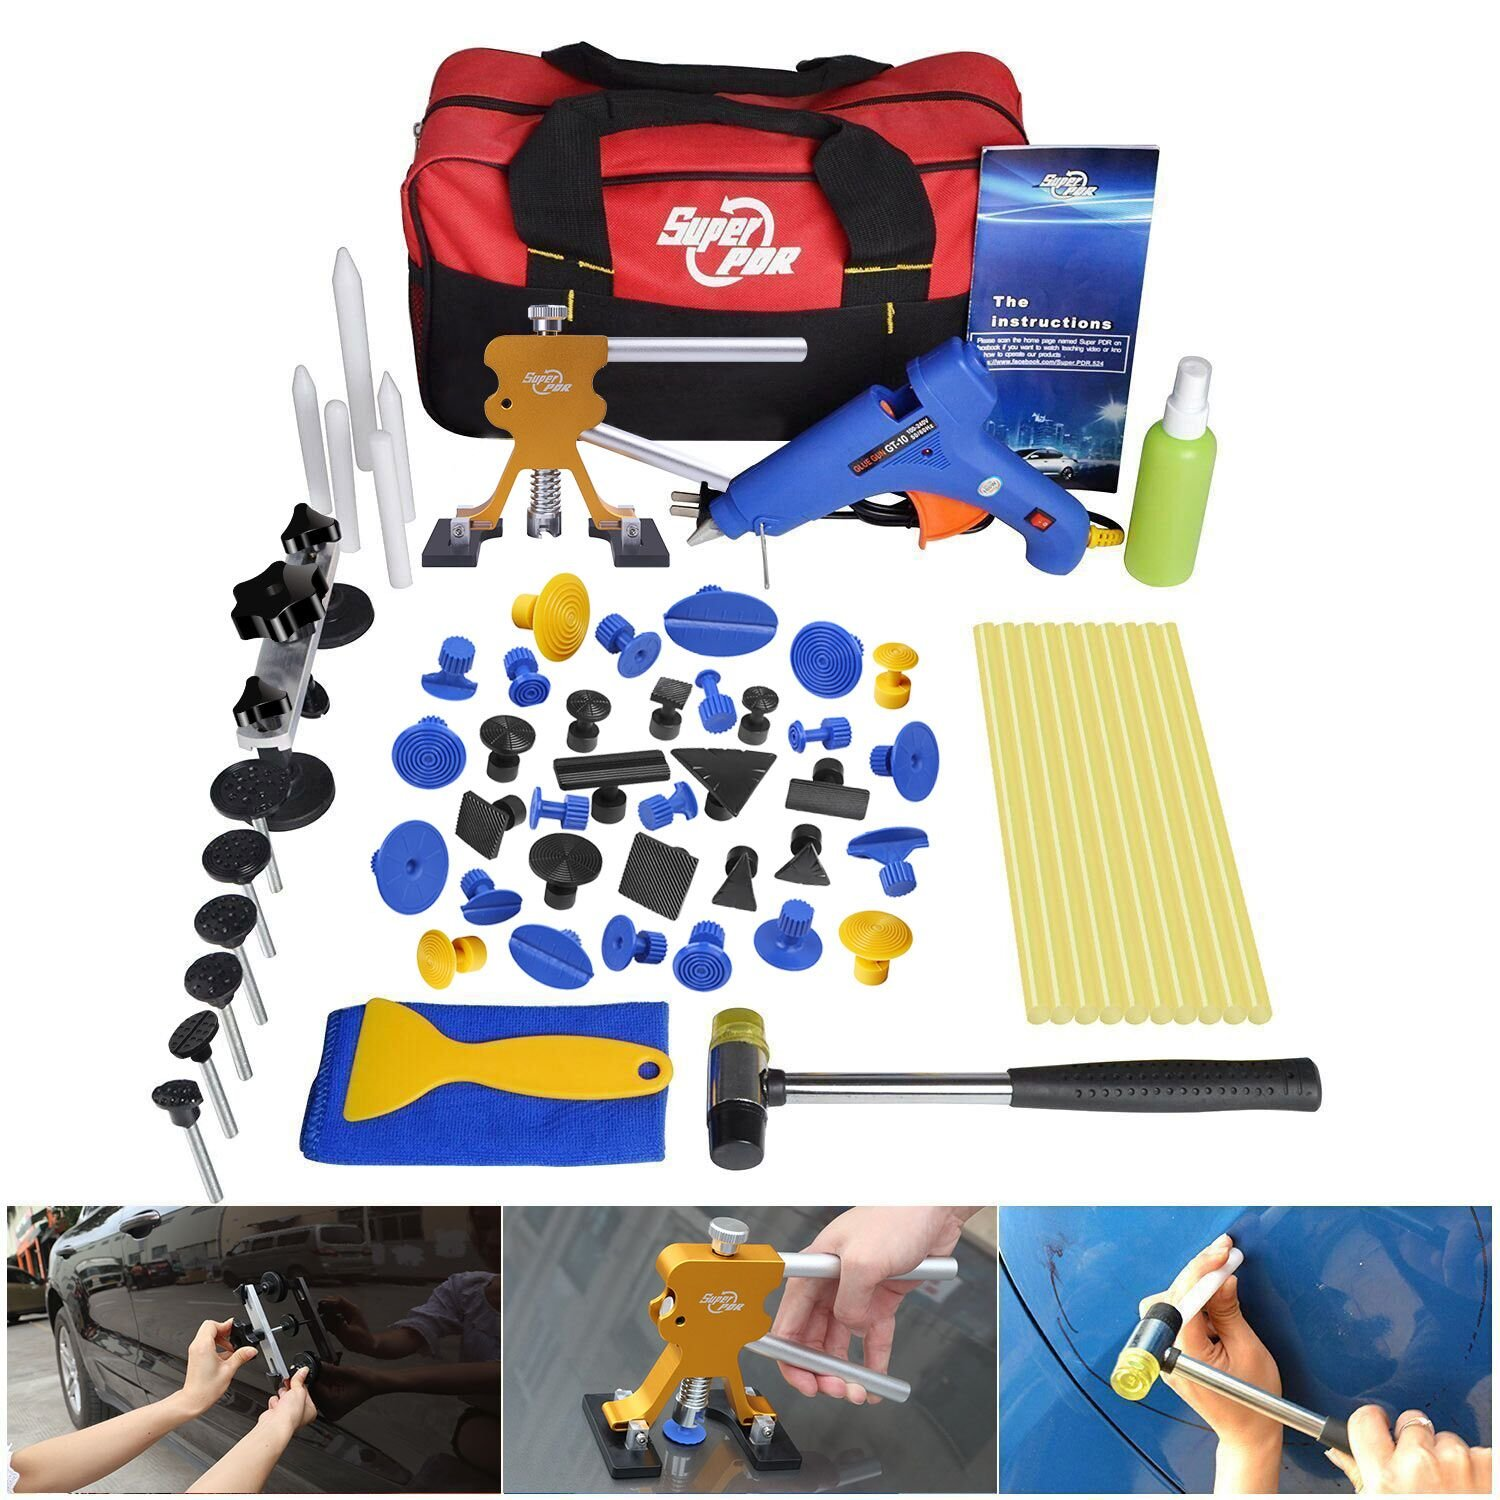 FLY5D 53Pcs Auto Body Paintless Dent Repair Removal Tool Kits Dent Lifter Bridge Glue Puller Kits With Tool Bag